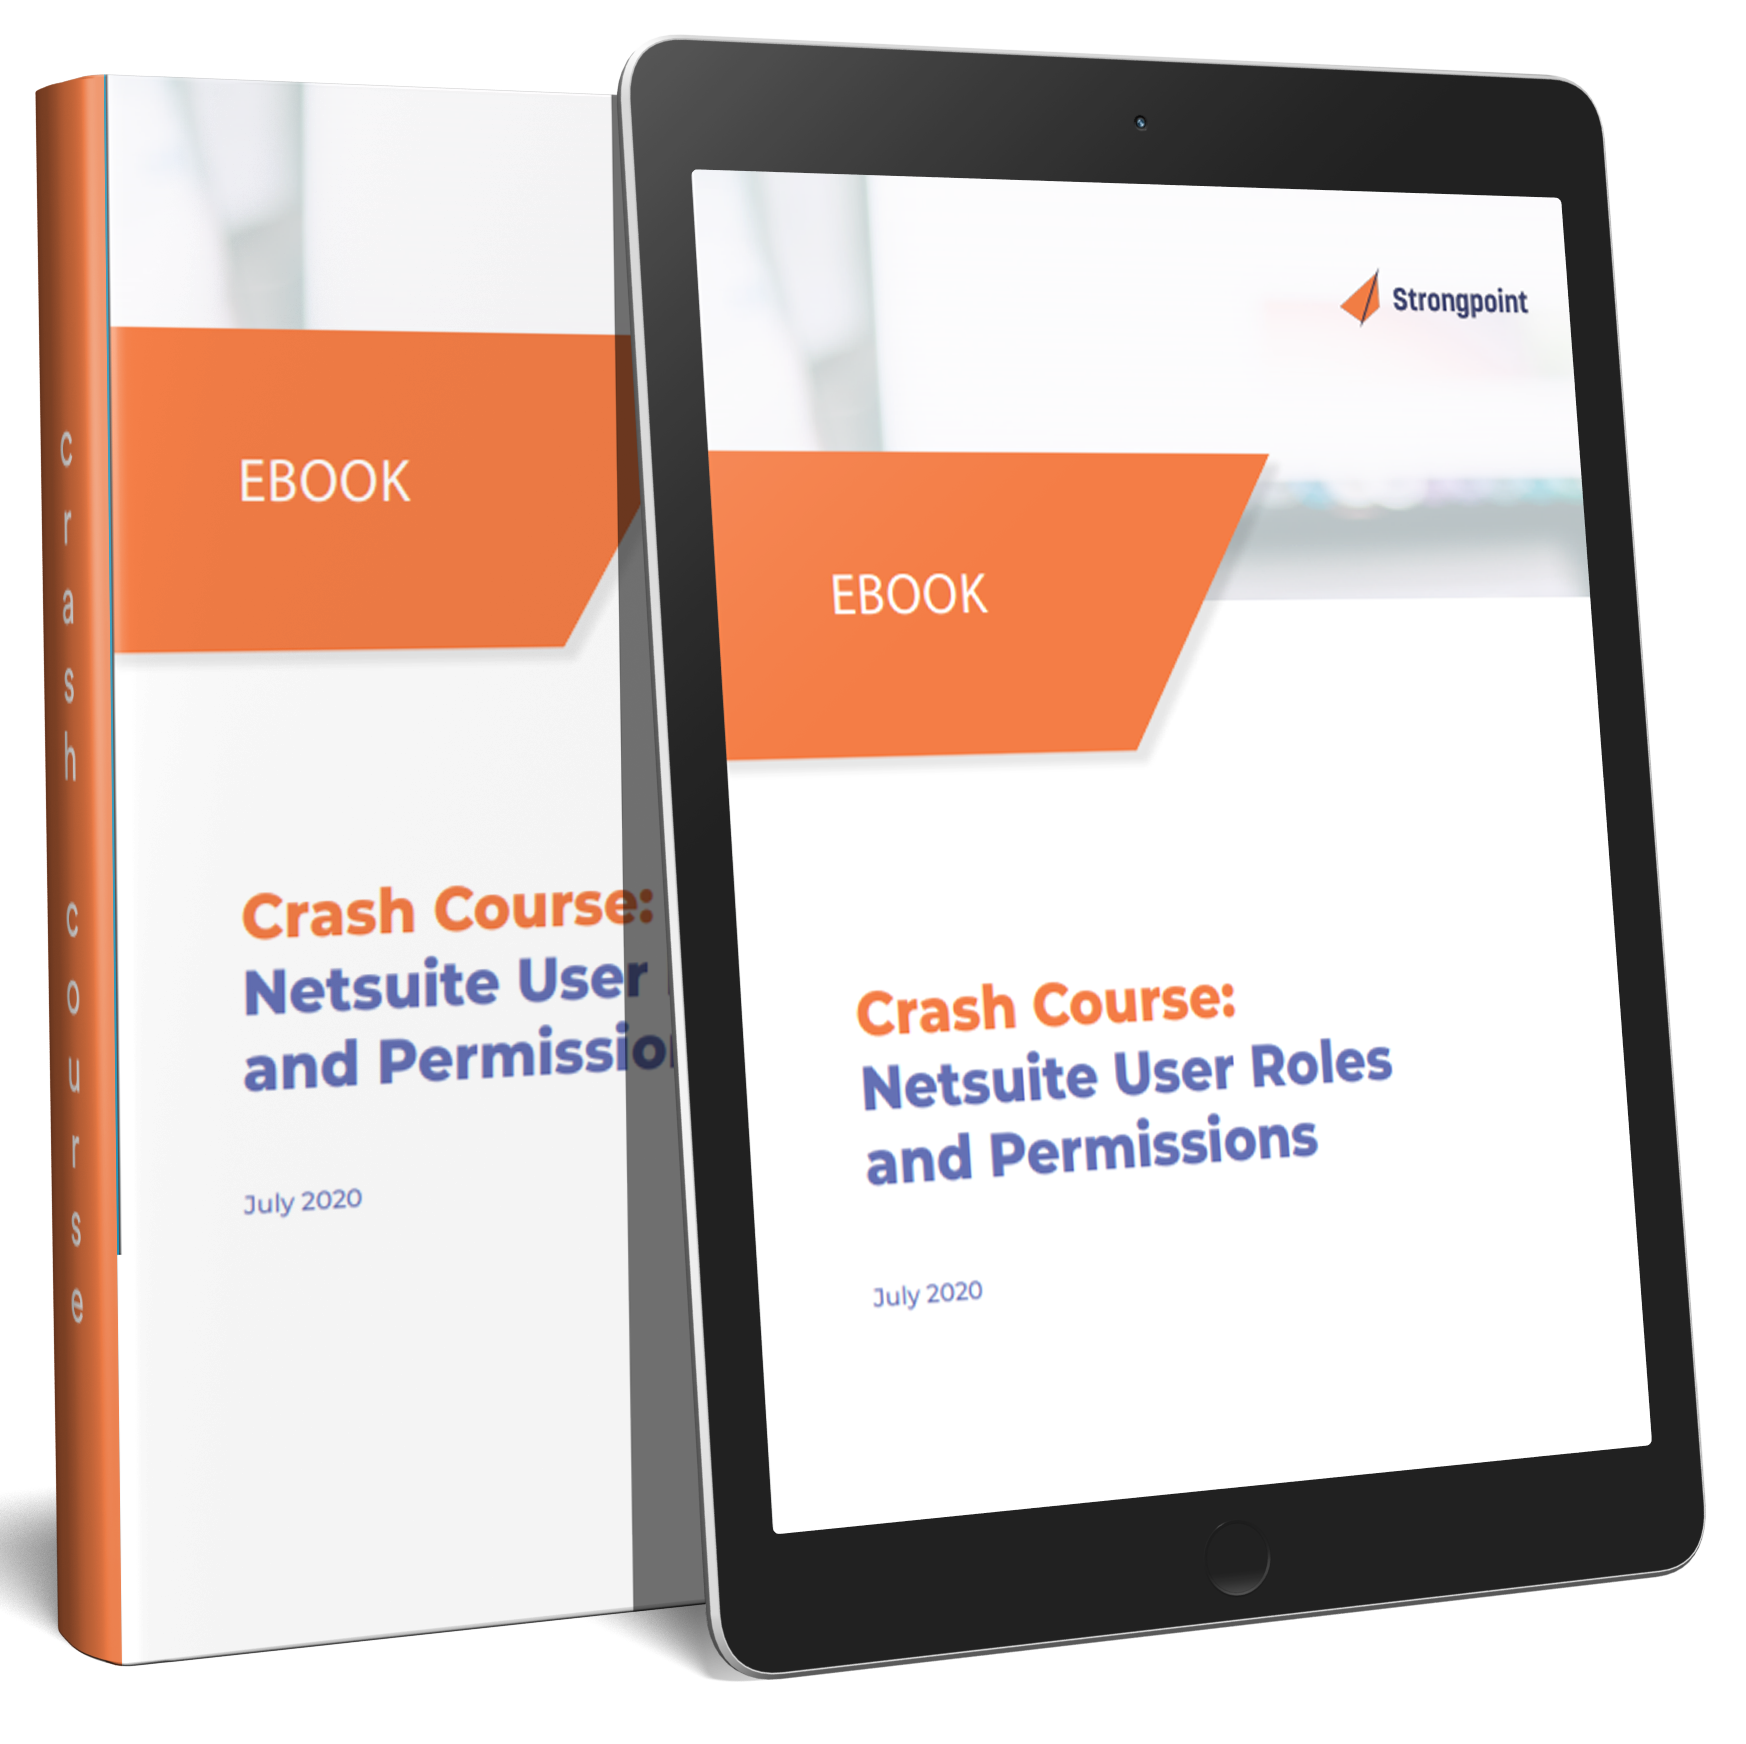 netsuite user roles and permissions ebook